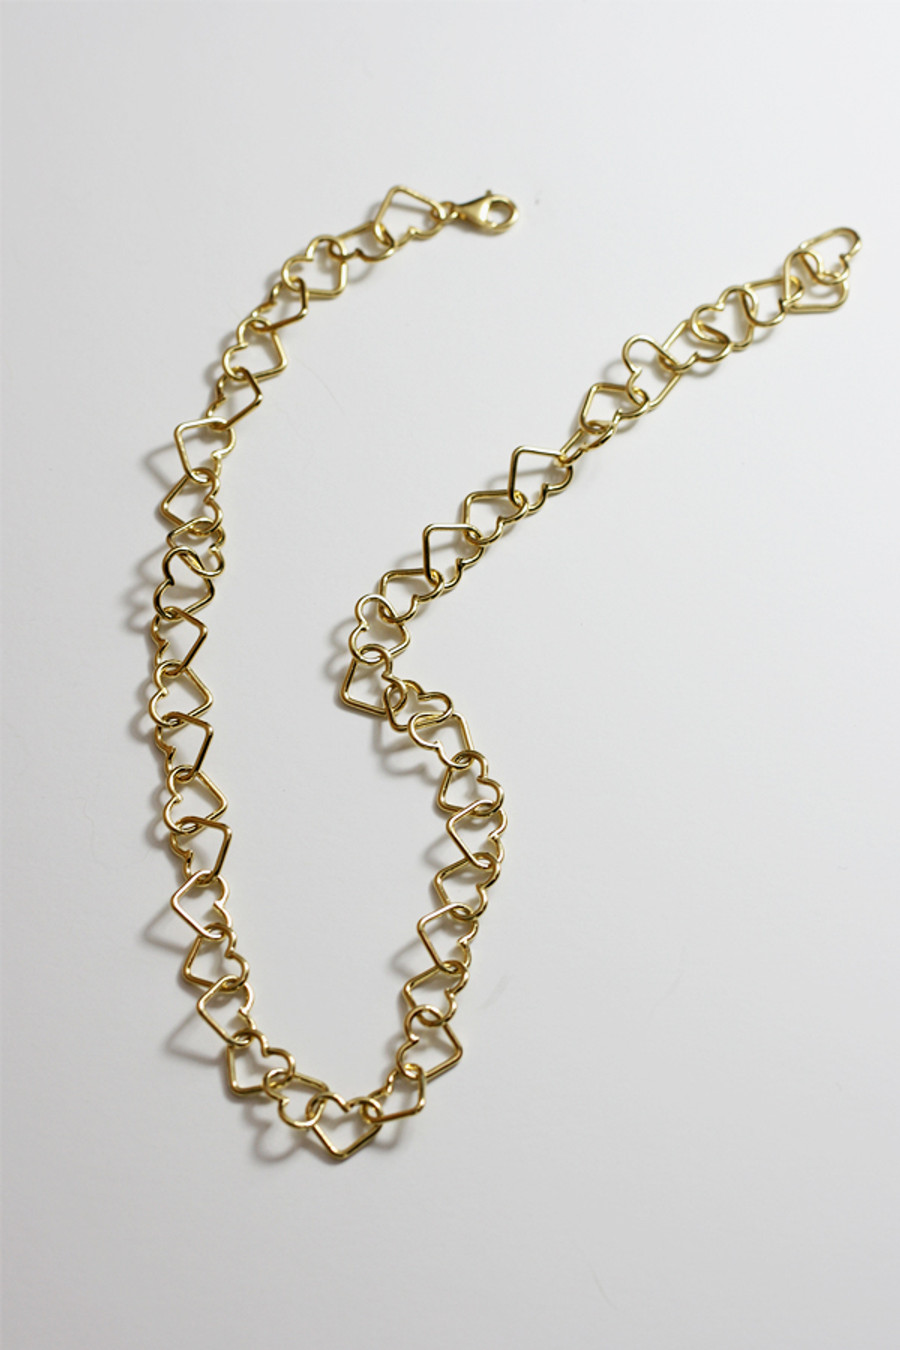 Gold Love Heart Chain Necklace Sterling Silver on kellinsilver.com